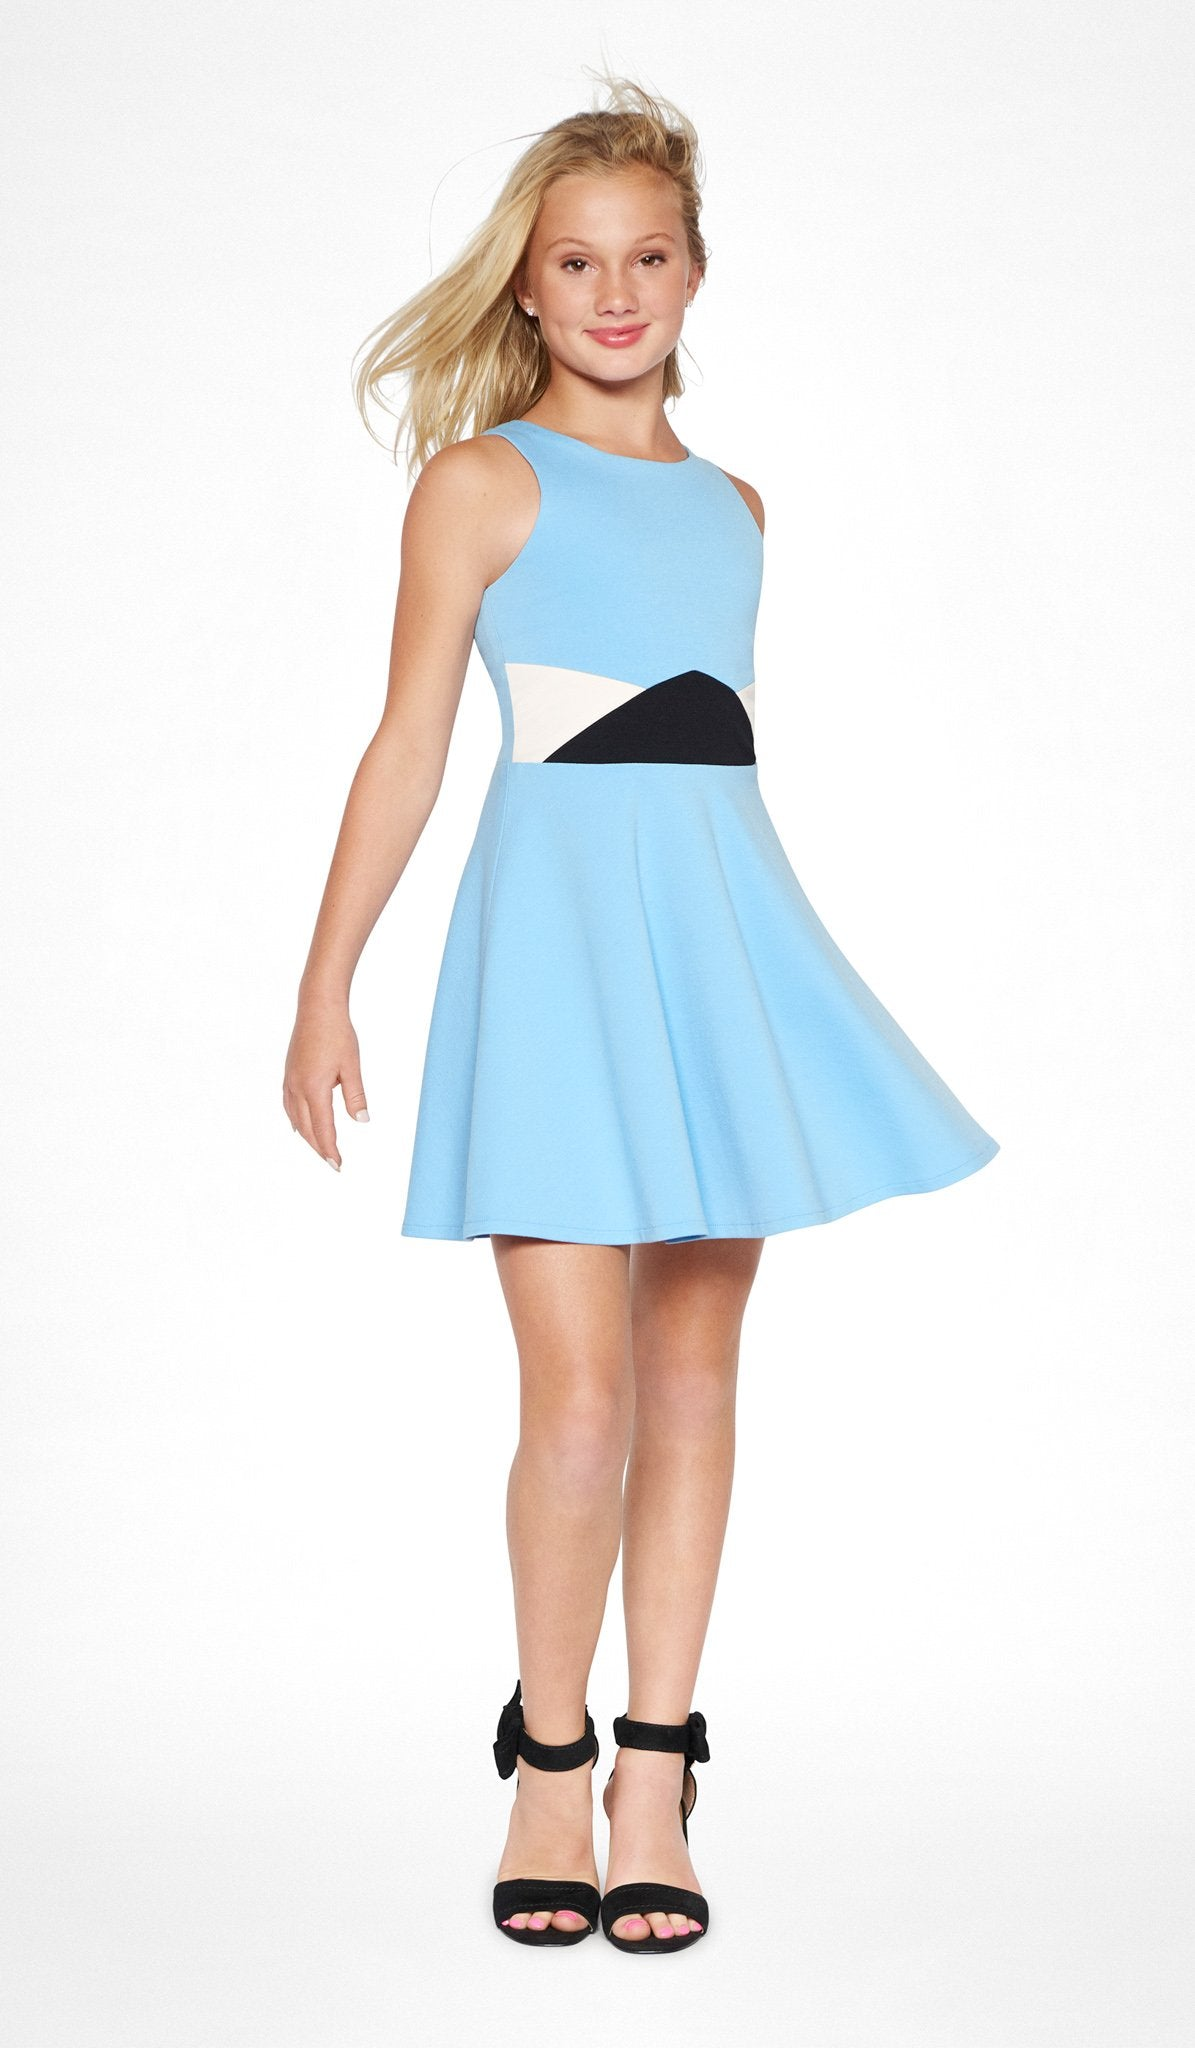 THE SKY DRESS - Sallymiller.com - [variant title] - | Event & Party Dresses for Tween Girls & Juniors | Weddings Dresses, Bat Mitzvah Dresses, Sweet Sixteen Dresses, Graduation Dresses, Birthday Party Dresses, Bar Mitzvah Dresses, Cotillion Dresses